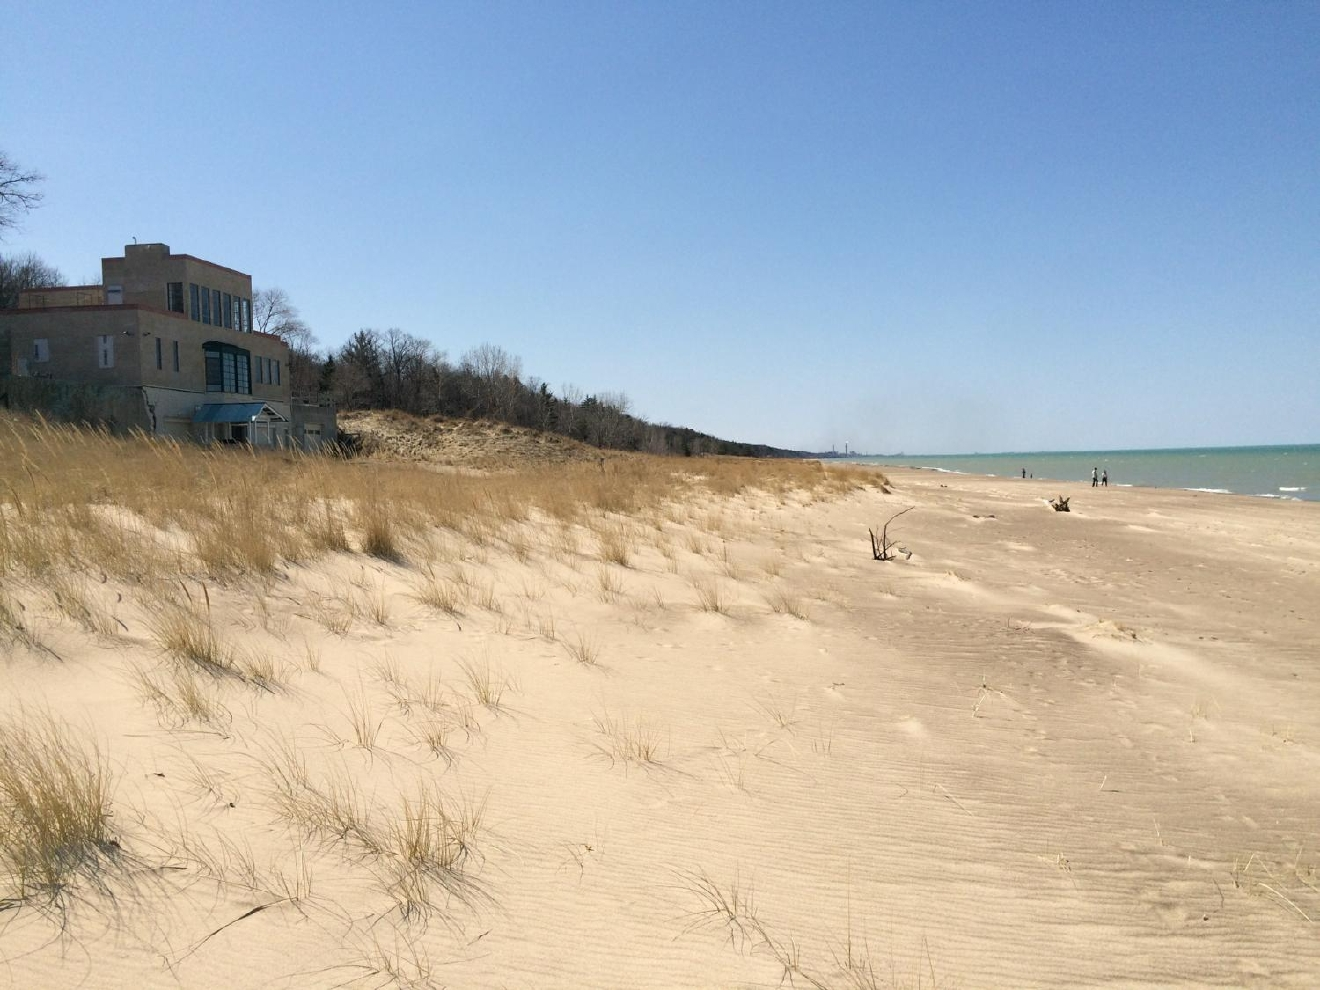 #4 - INDIANA DUNES STATE PARK, INDIANA (Distance from Downtown Cincy: approx. 4.5 hours) / Image: Jen Seiser